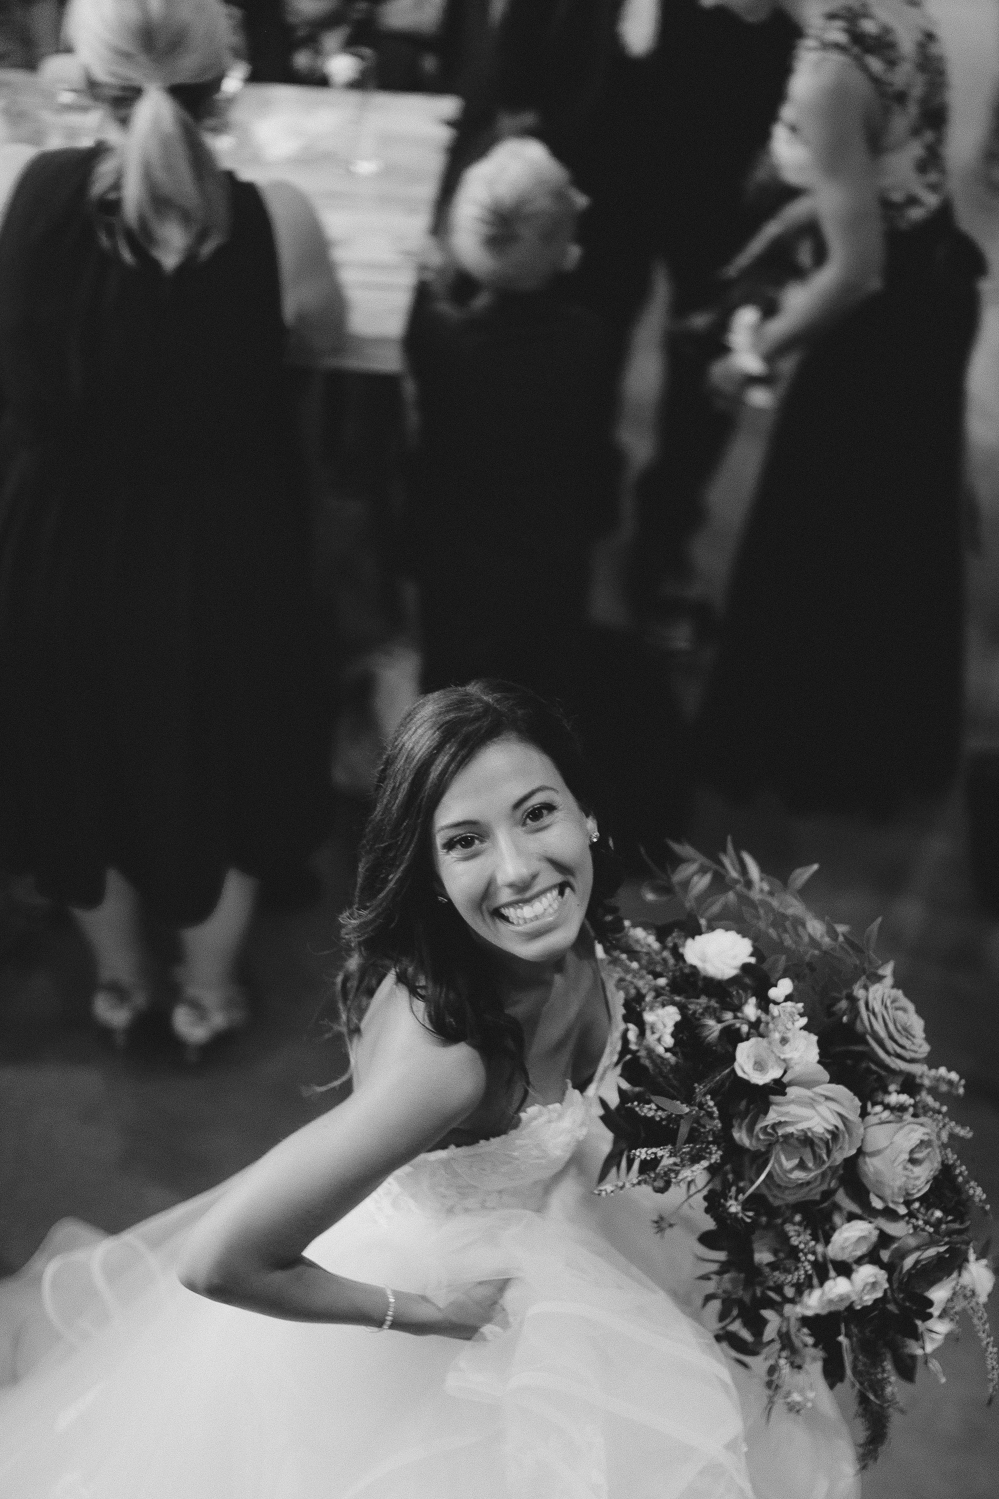 steamwhistle wedding black and white candid photographer